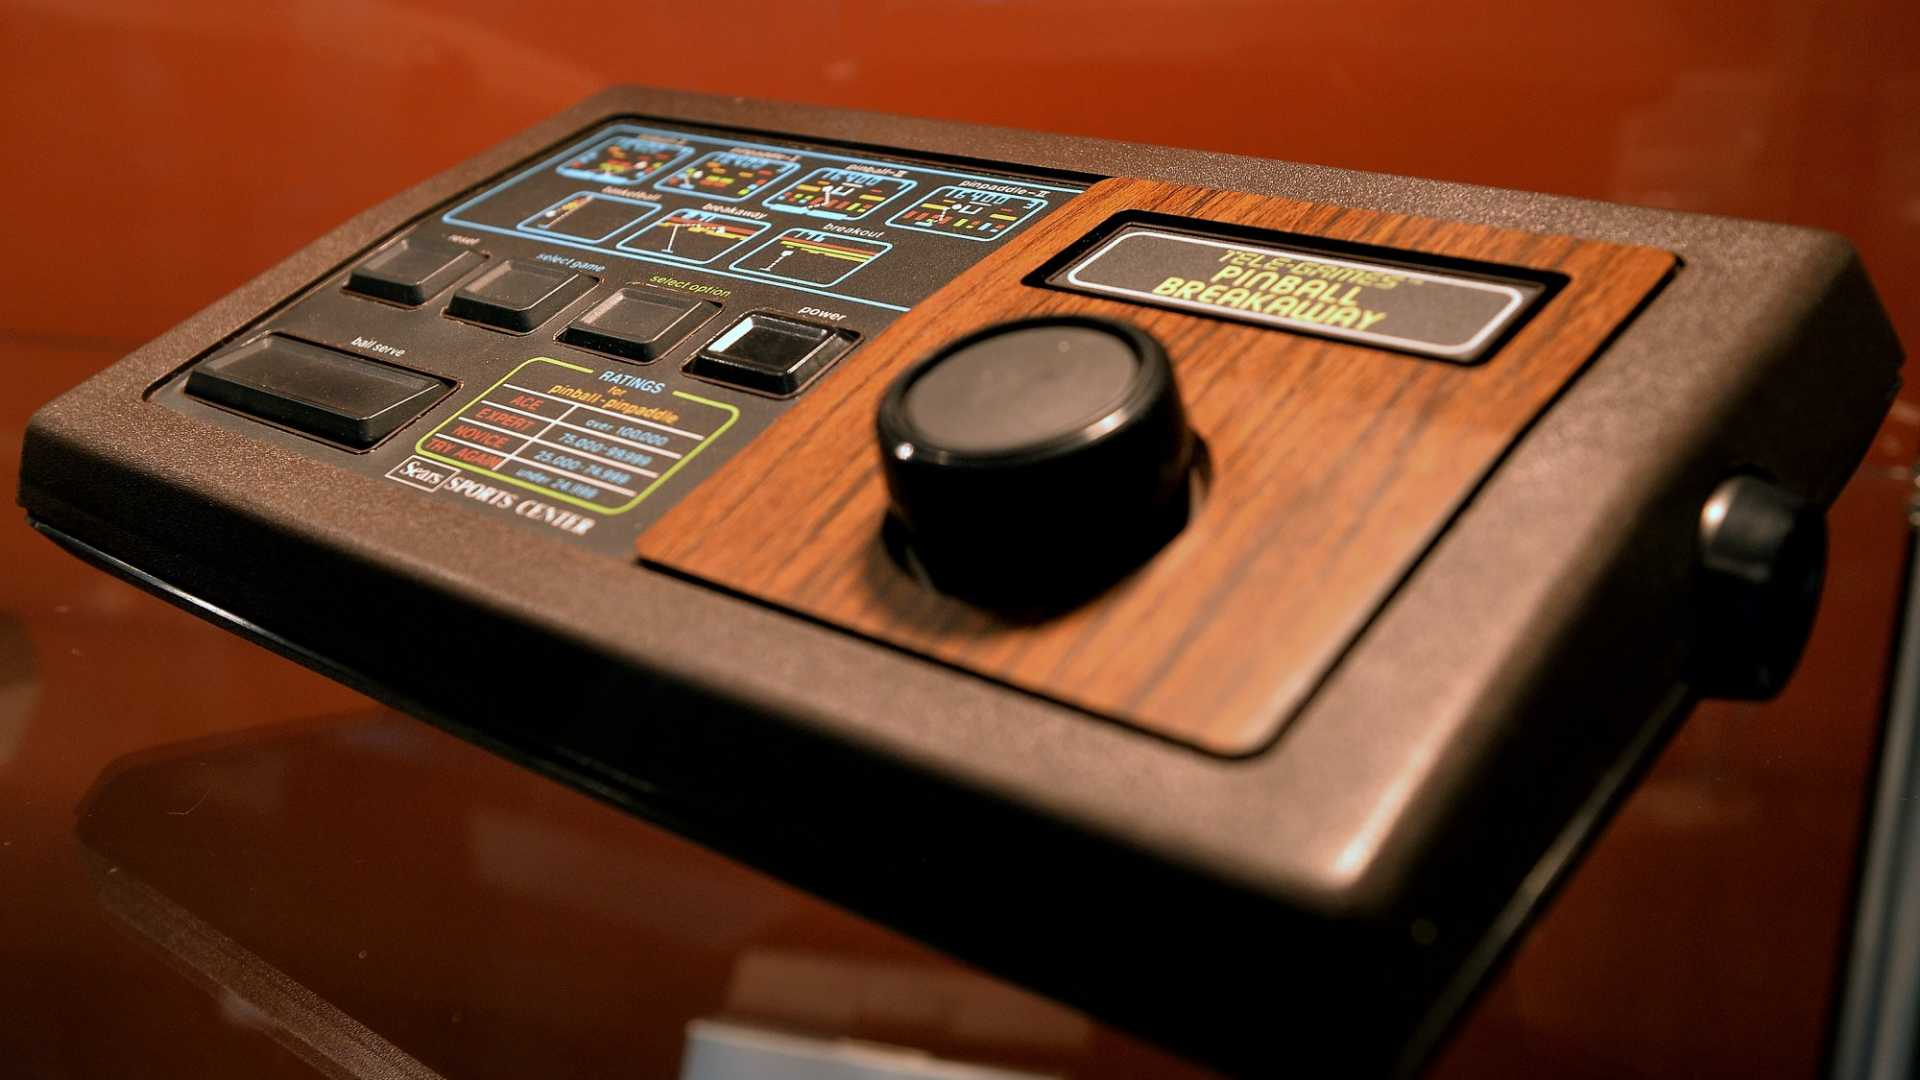 Atari-Themed Hotels Are Coming to the U.S.,Tapping Into the Power of Gaming and Nostalgia